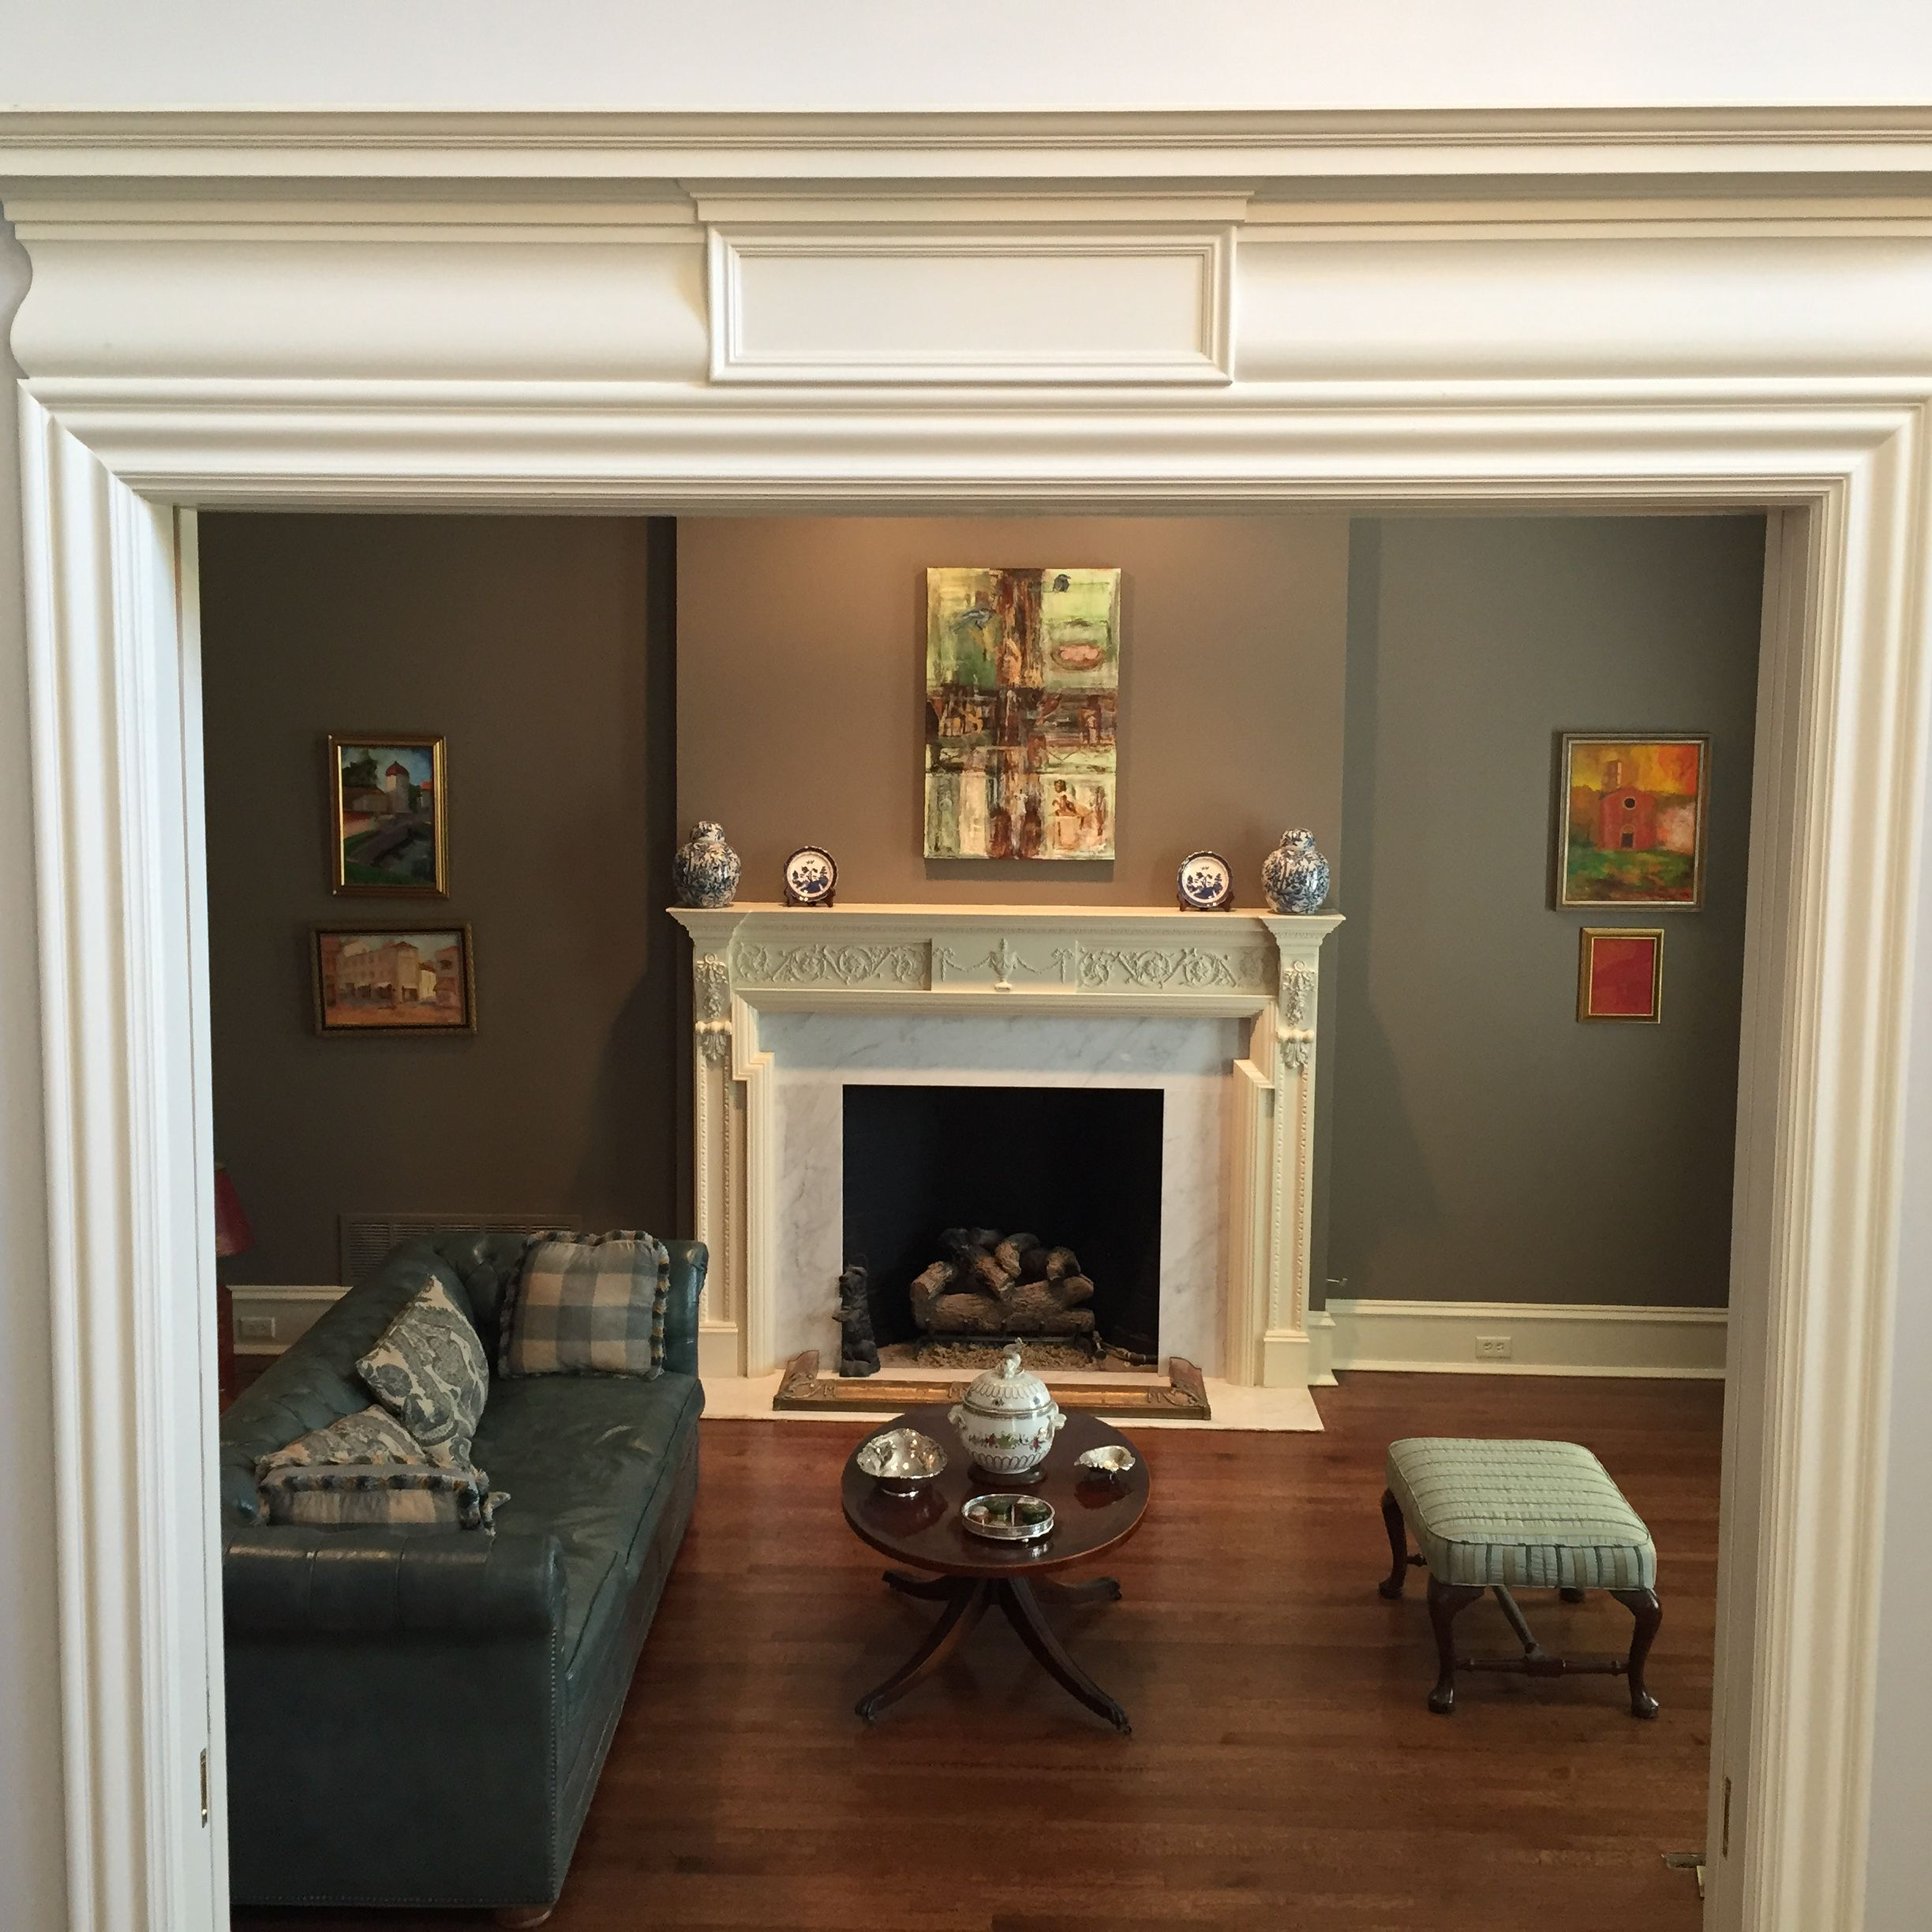 Sherwin Williams Backdrop Paint Walls Benjamin Moore Elephant Tusk Interior Paint Colors For Living Room Perfect Living Room Paint Paint Colors For Living Room